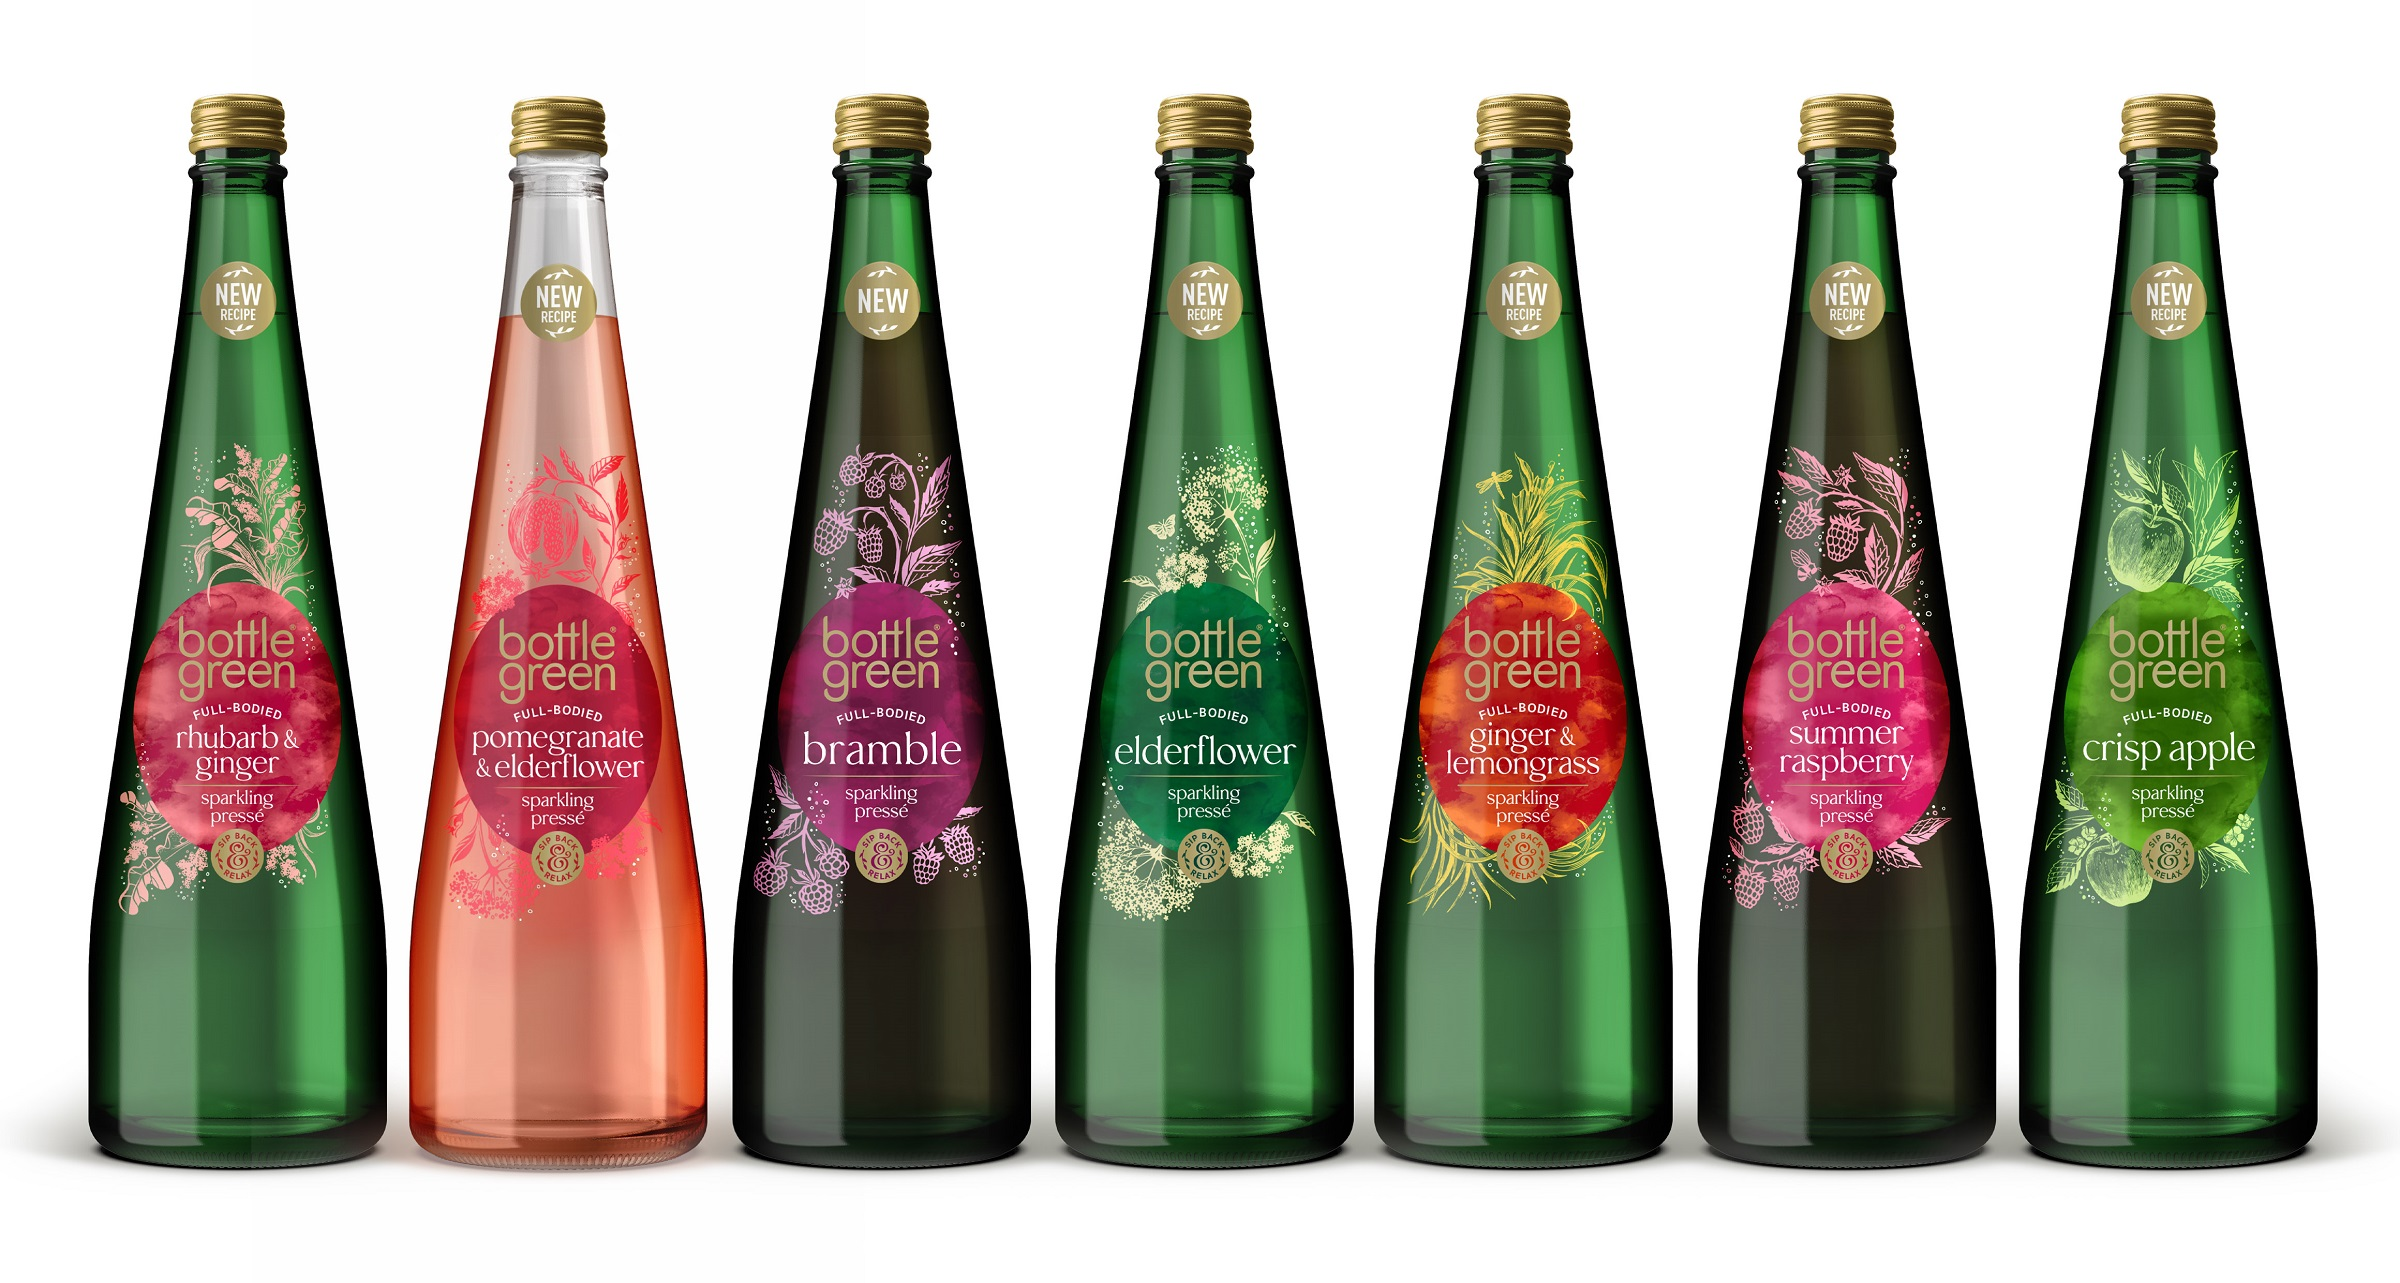 Bottlegreen relaunches – with new variants